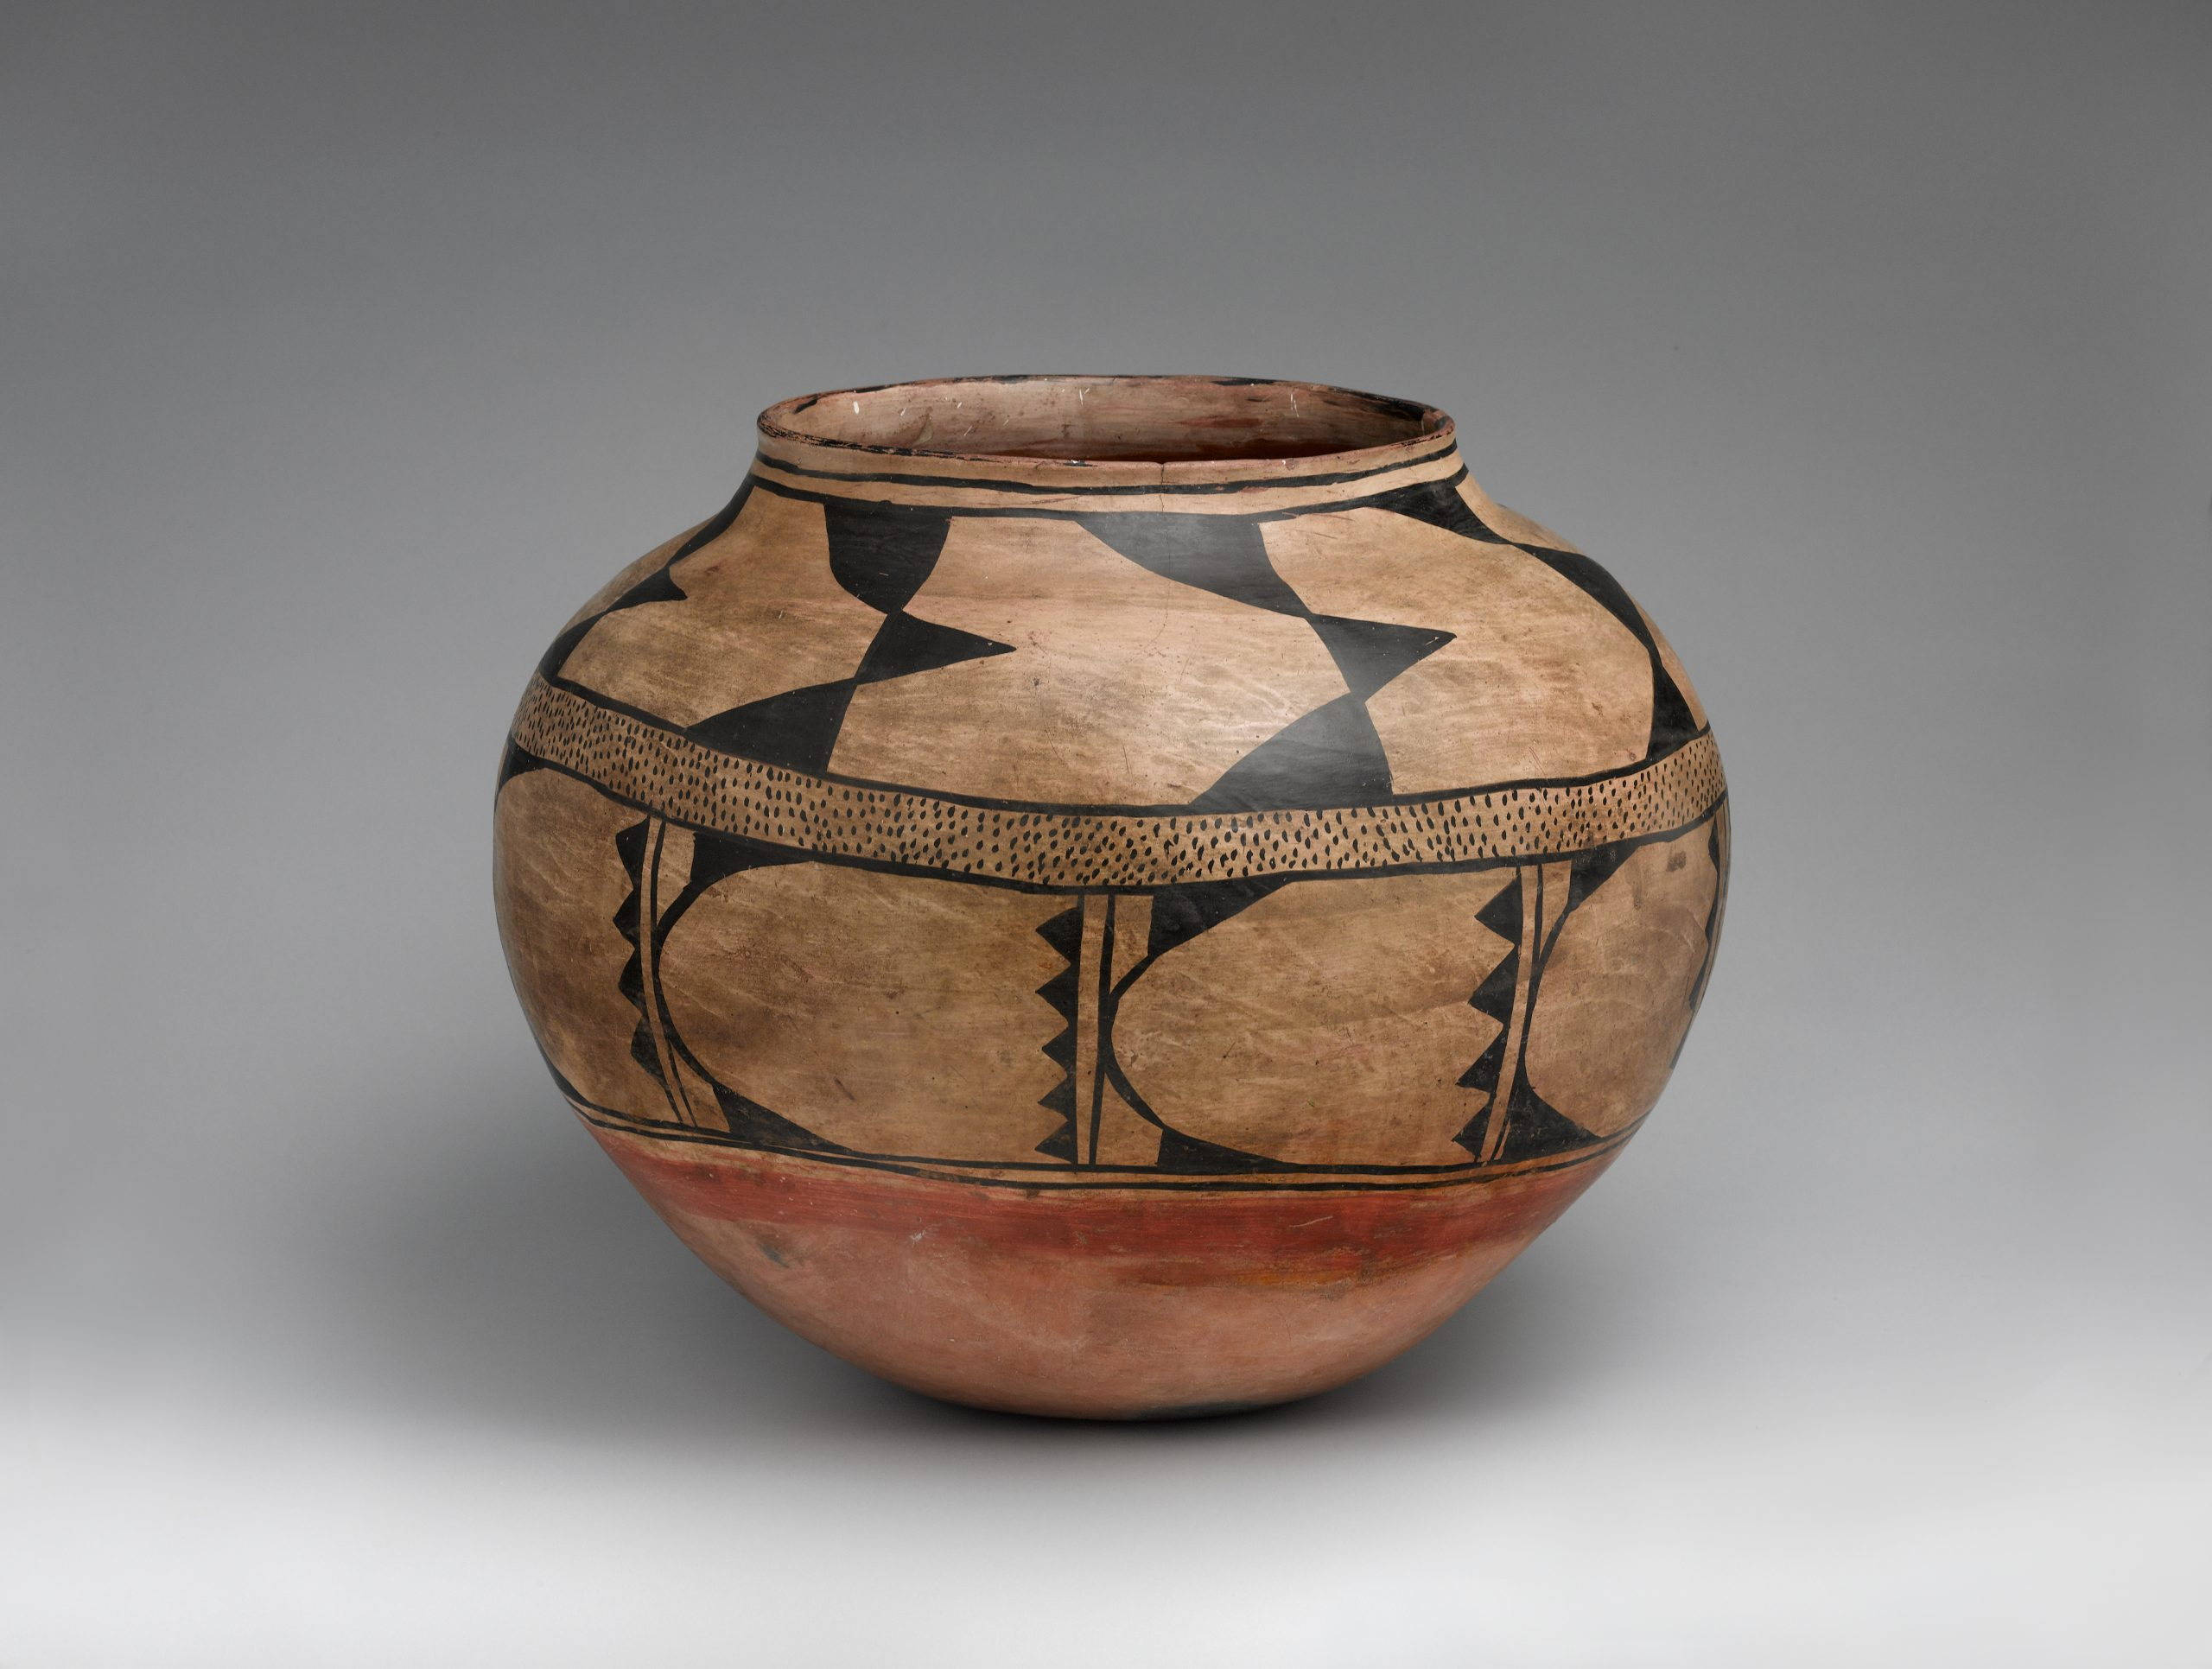 Ceramic bowl painted with striped, floral, and wedge motifs.